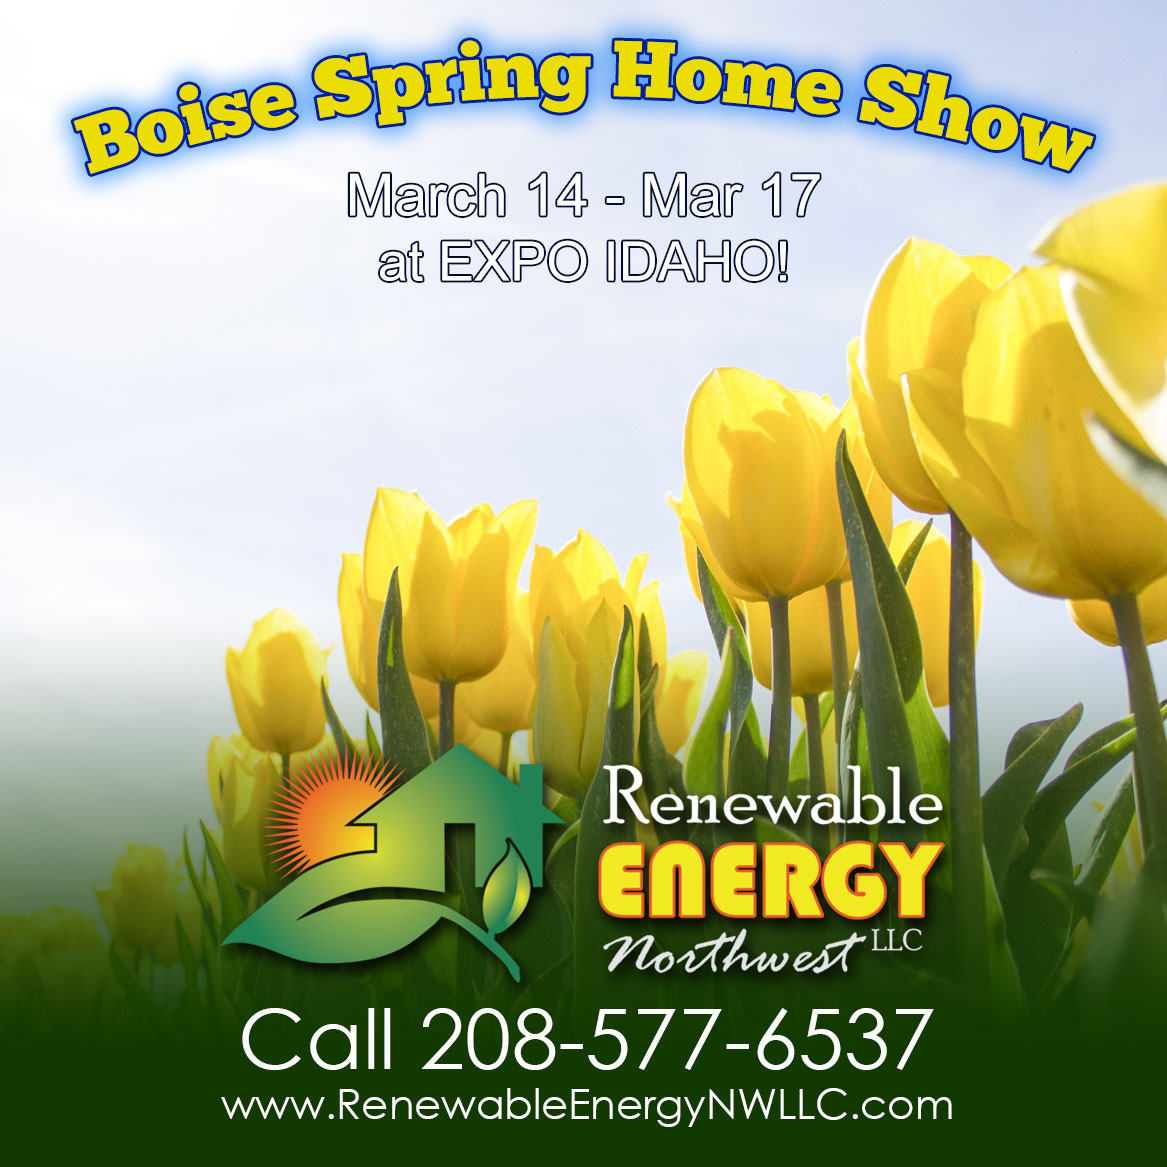 RENW at the Boise Spring Home Show!